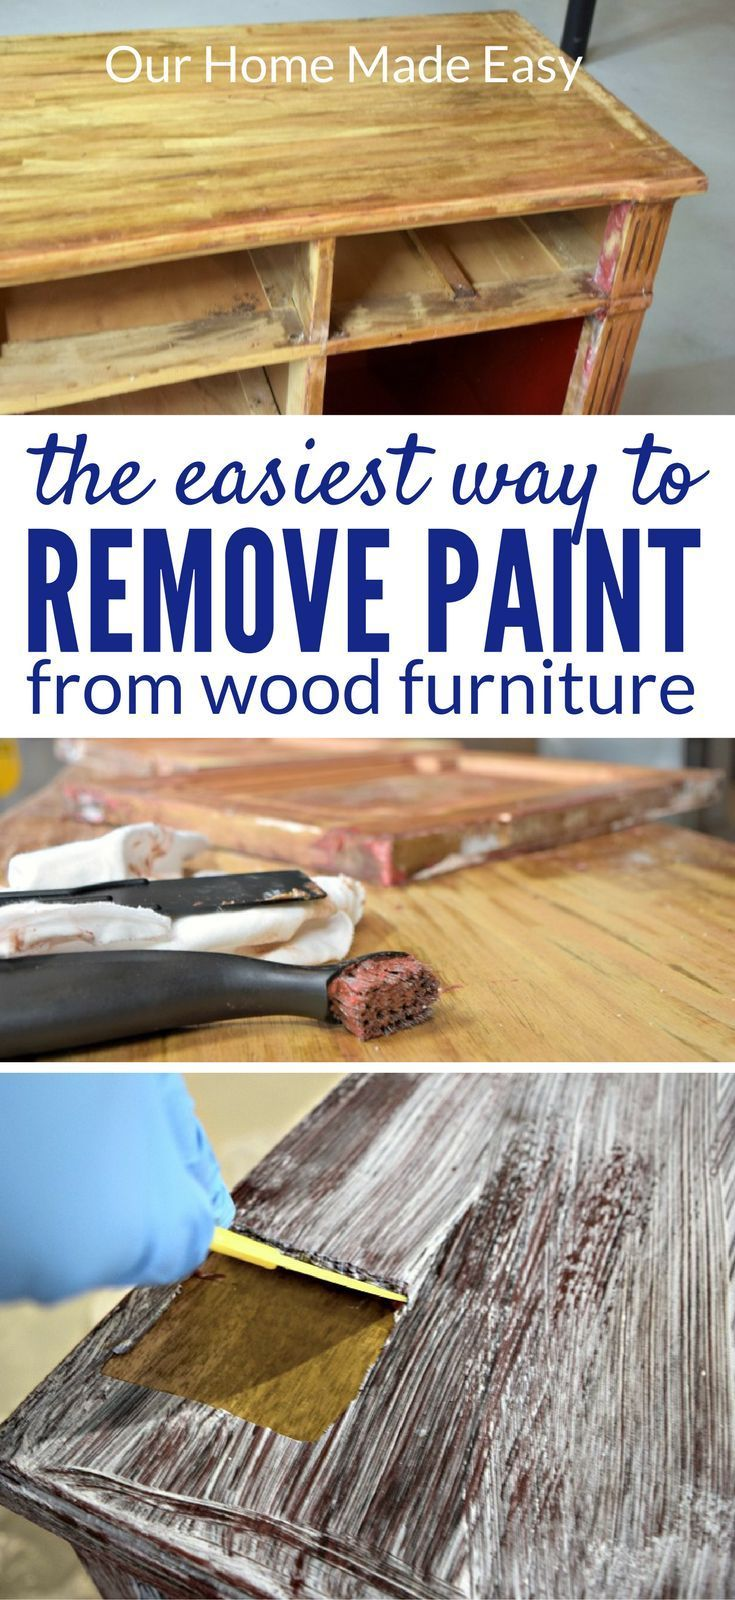 Attractive How To Easily Remove Paint U0026 Varnish From Old Furniture!